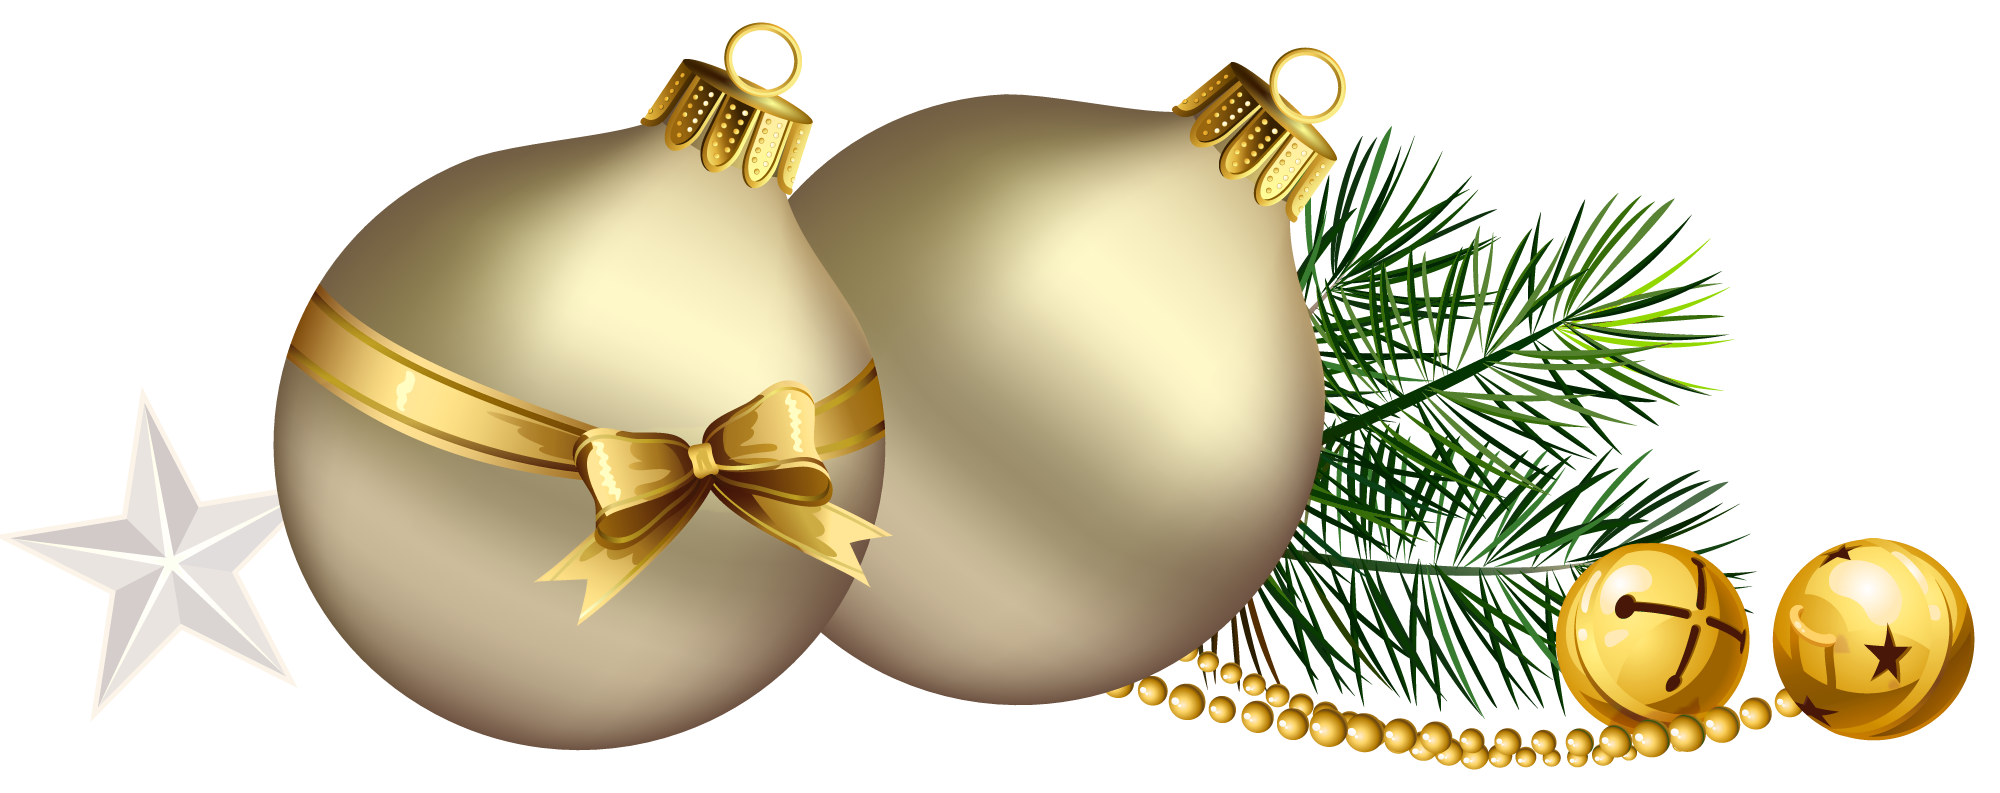 Christmas balls with pine. Marbles clipart victorian toy